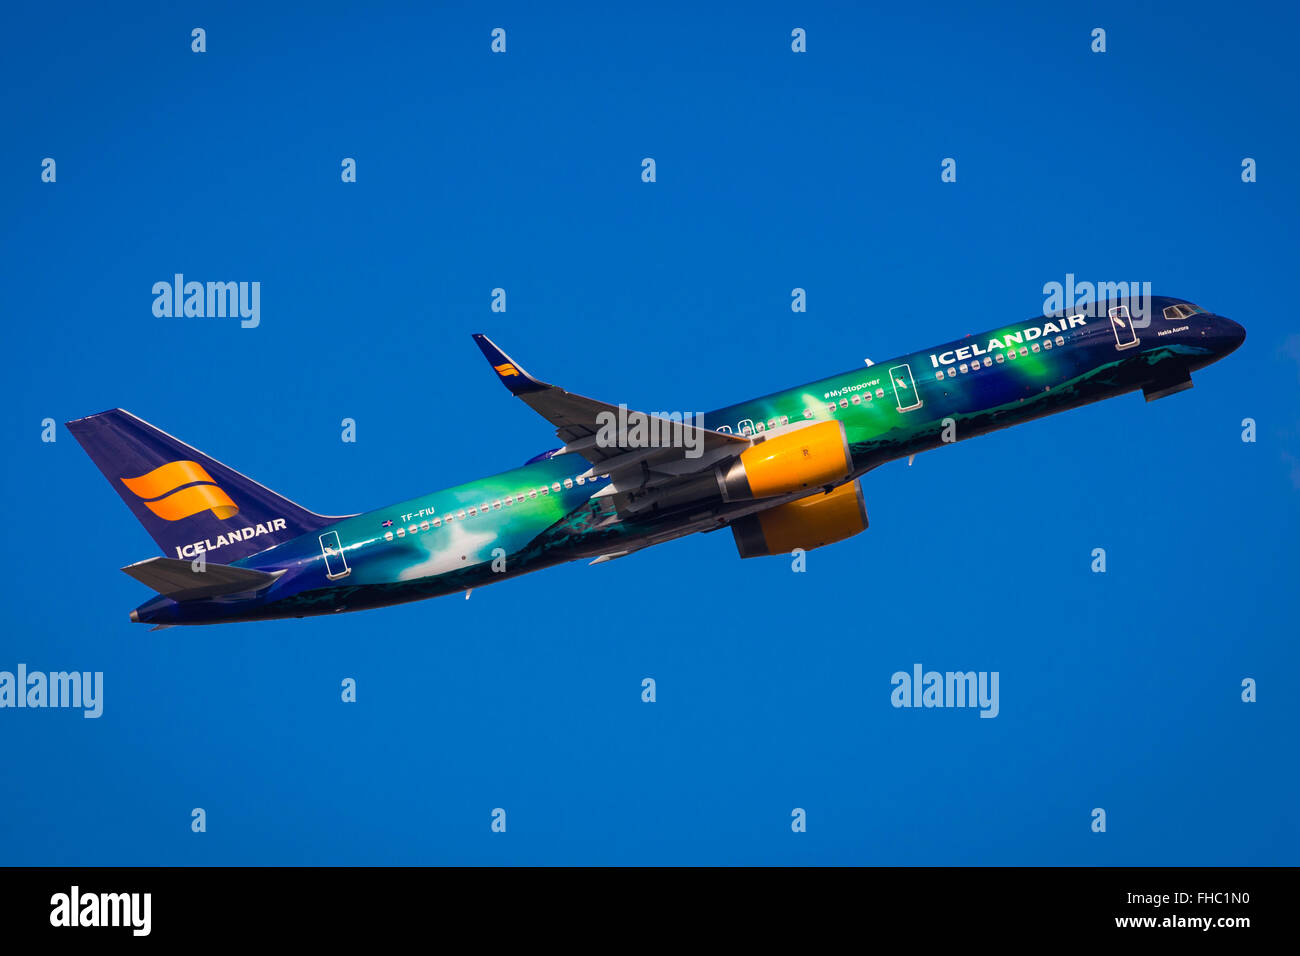 Icelandair Hekla Aurora Northern lights Special Colour Scheme Boeing 757 - Stock Image